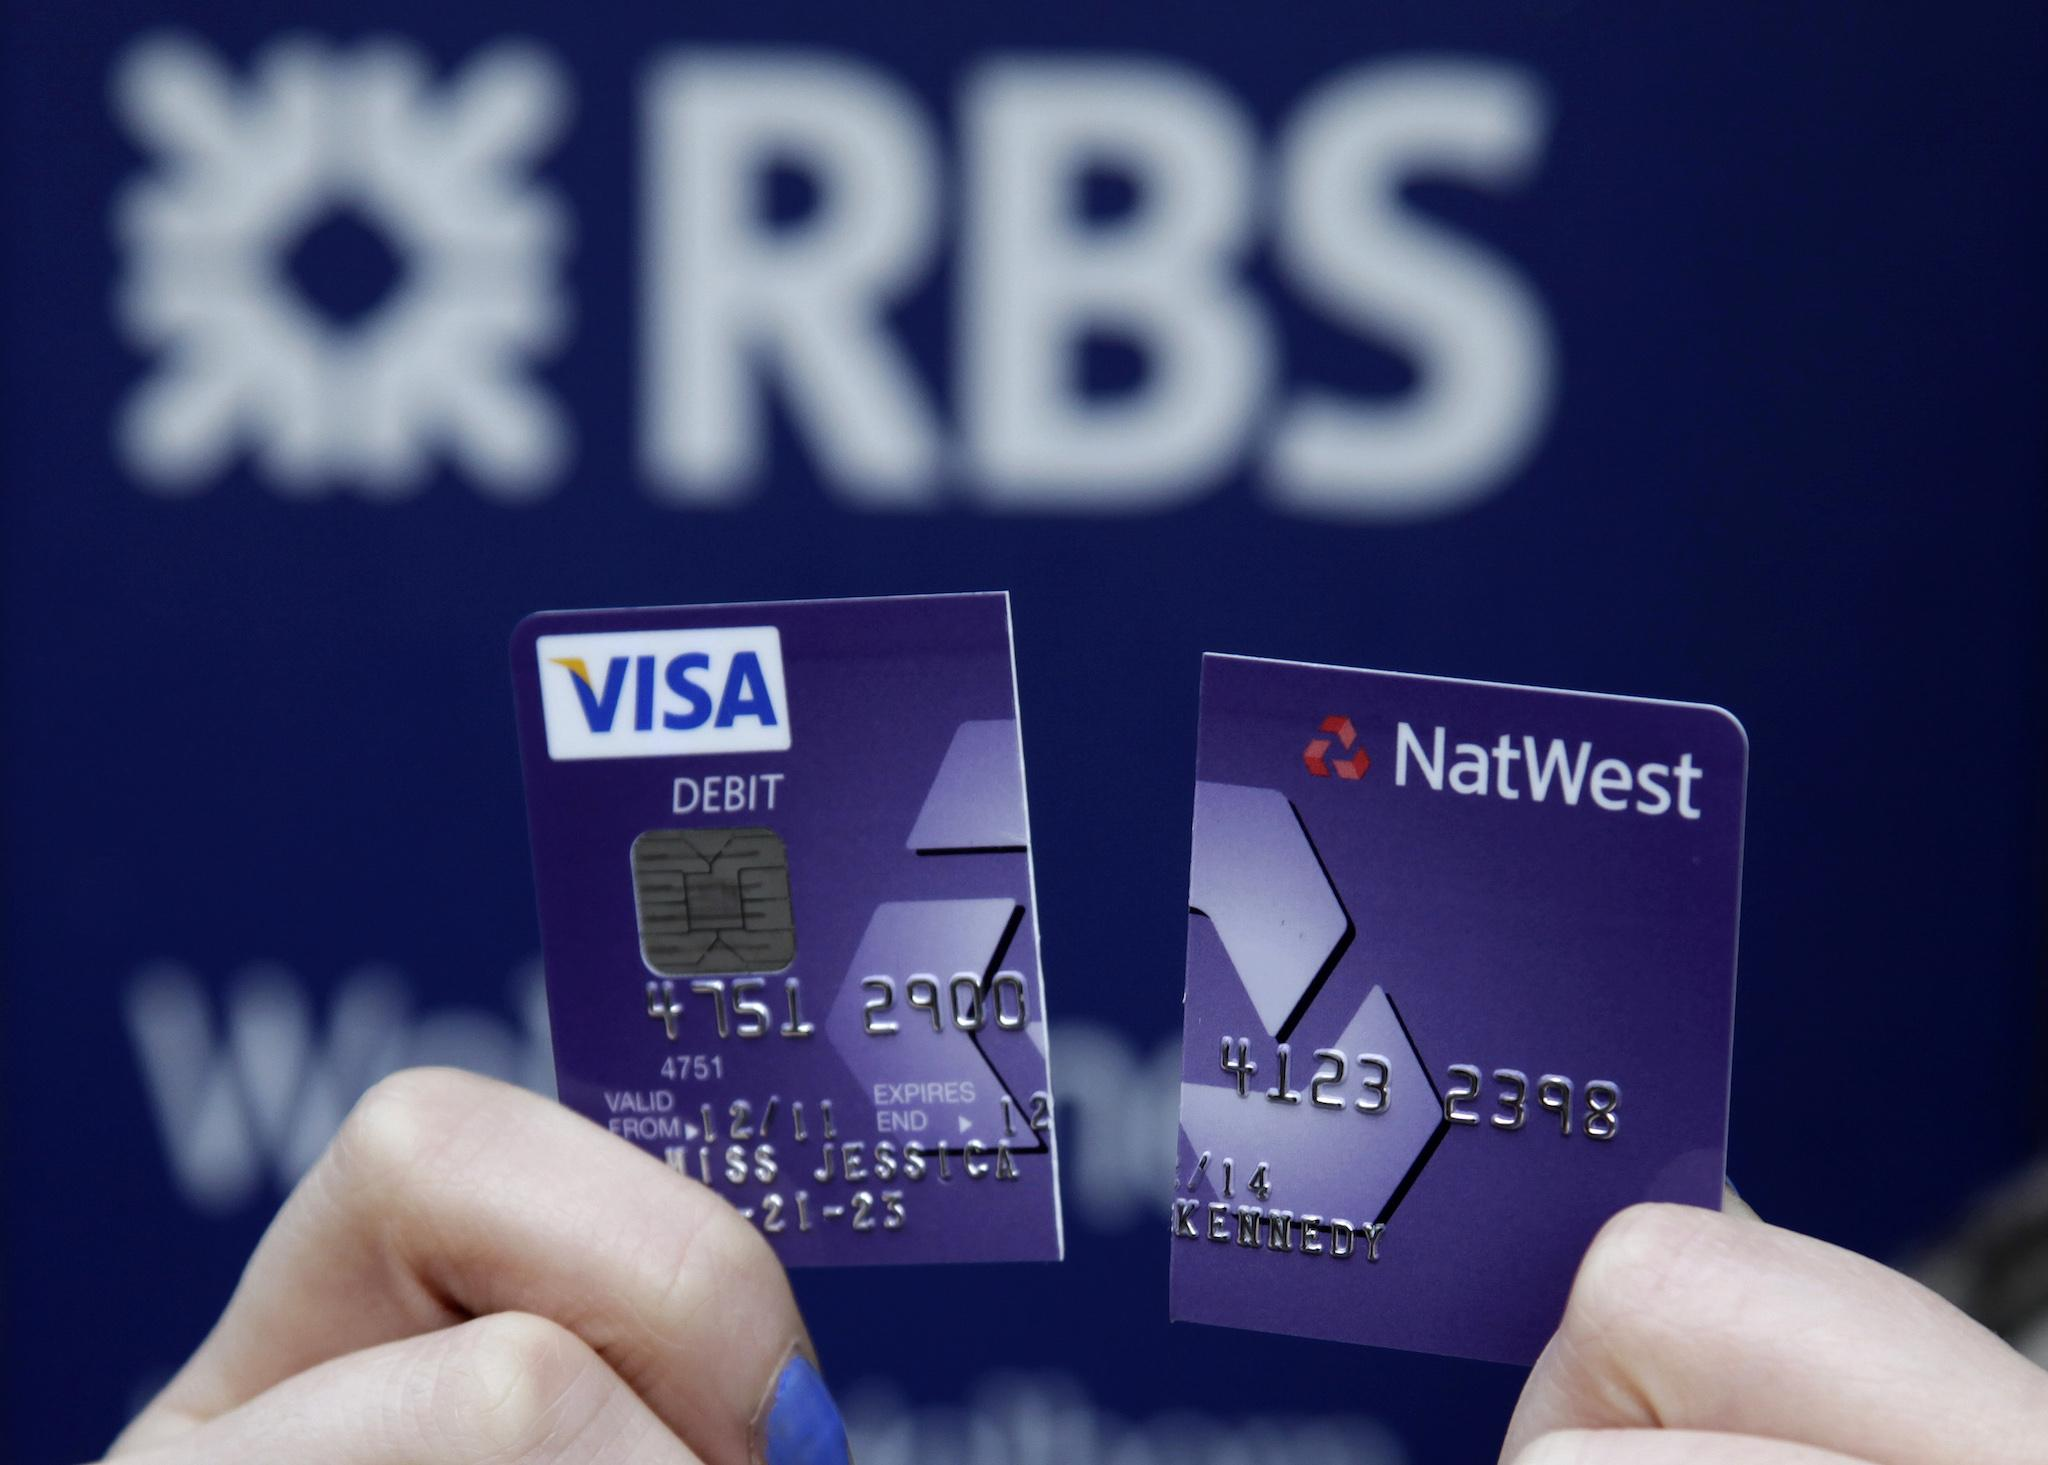 Natwest down: Money disappearing from accounts as transfers stop ...